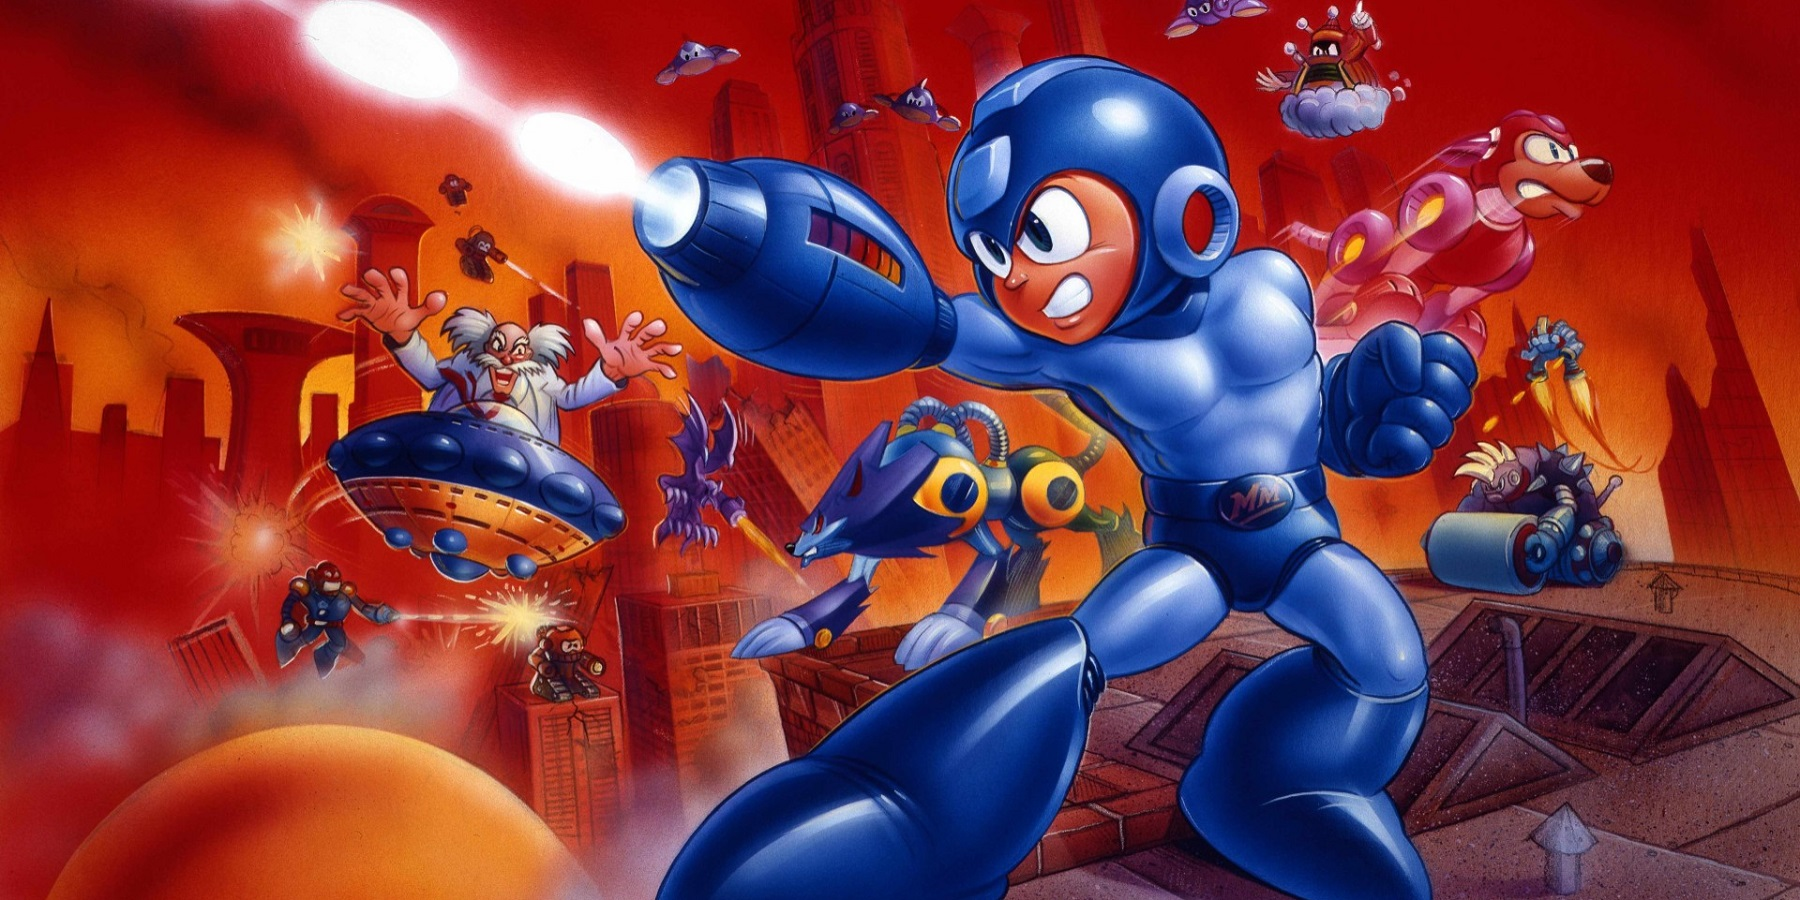 mega-man-nintendo-switch